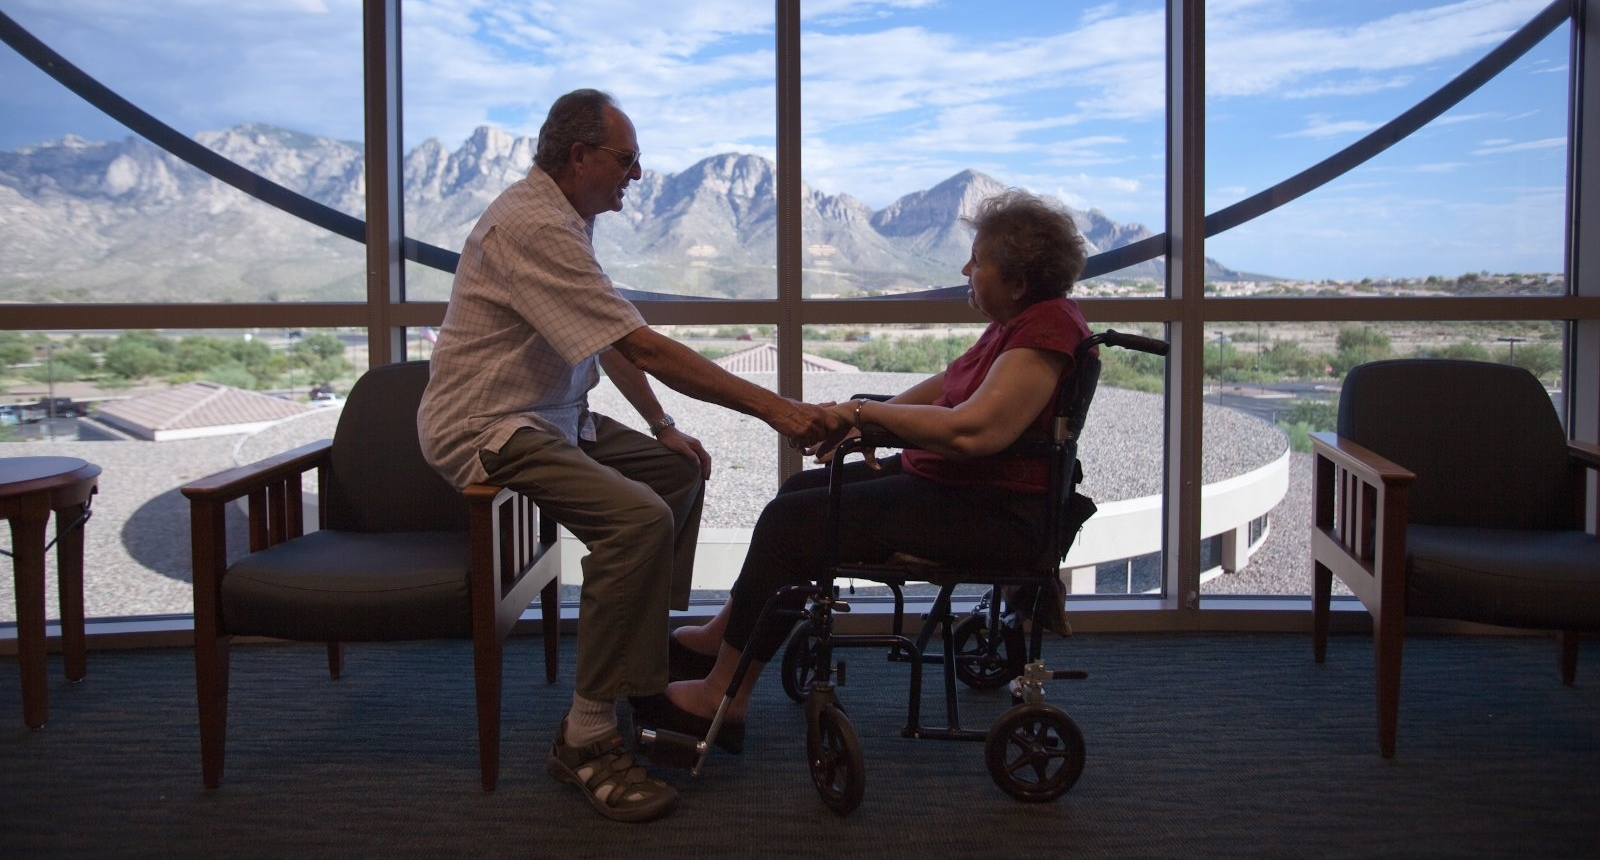 An elderly couple, the woman in a wheelchair sitting in front of a large window showing a view of mountains.